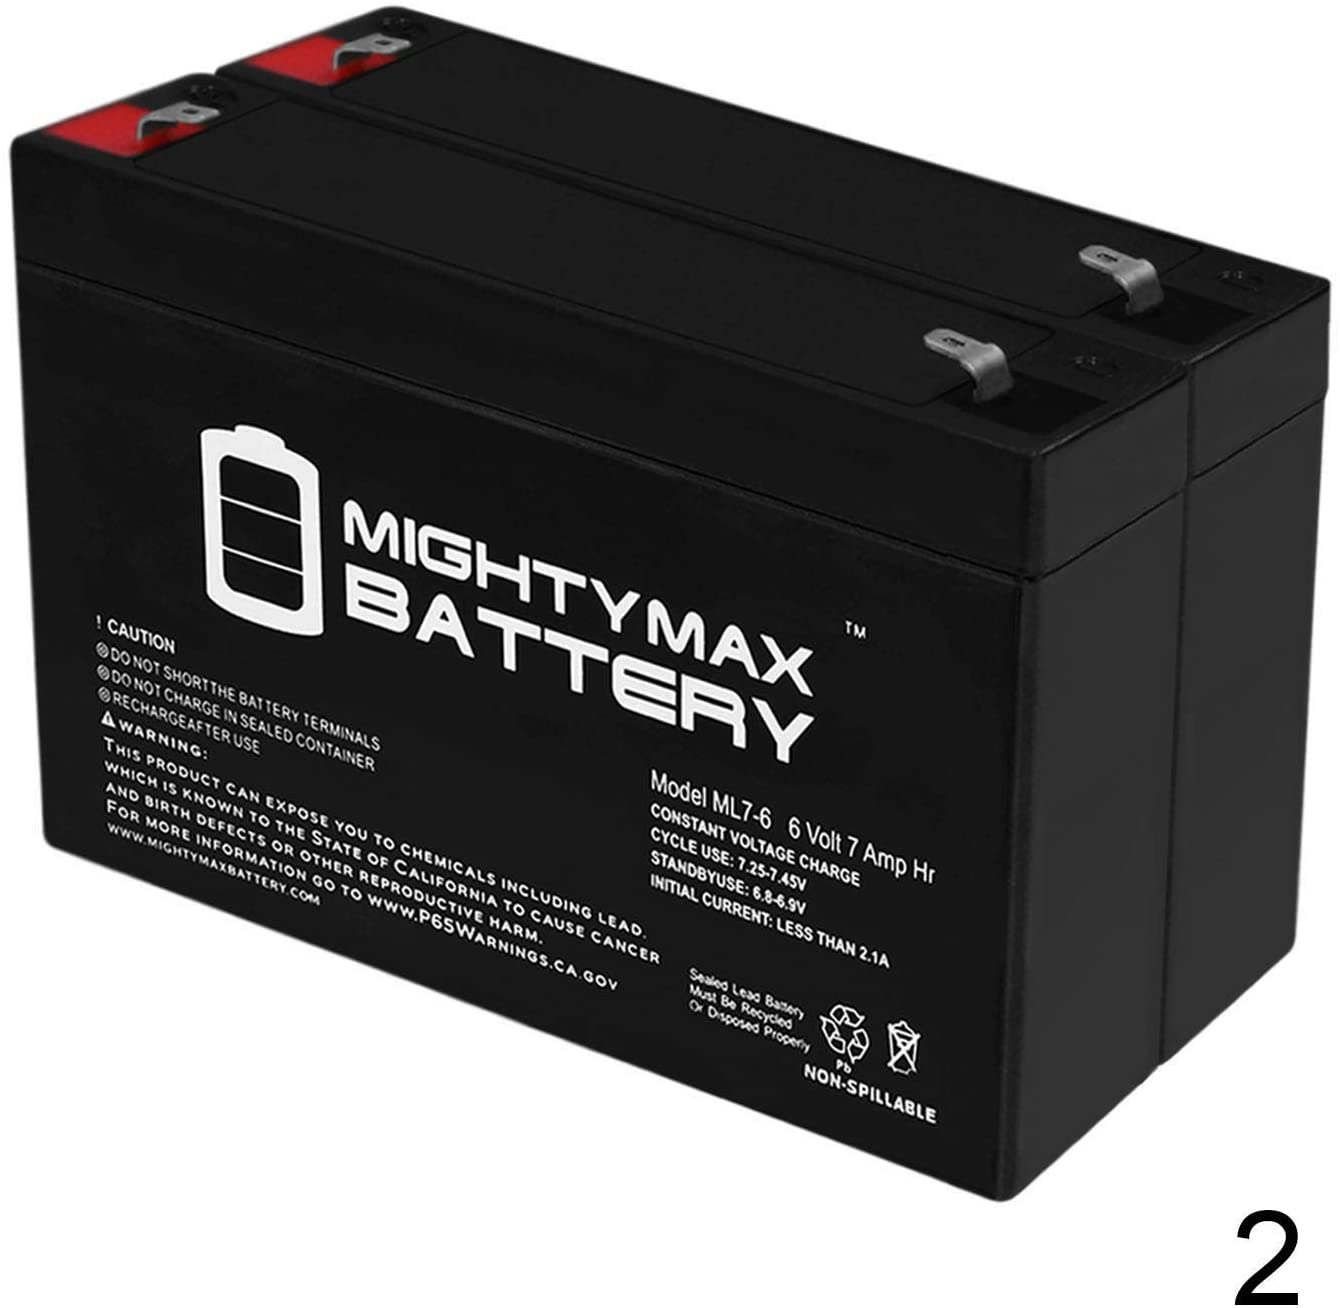 Mighty Max Battery 6V 7AH Sealed Lead Acid (SLA) Battery for Wheelchair Medical Mobility - 2 Pack Brand Product